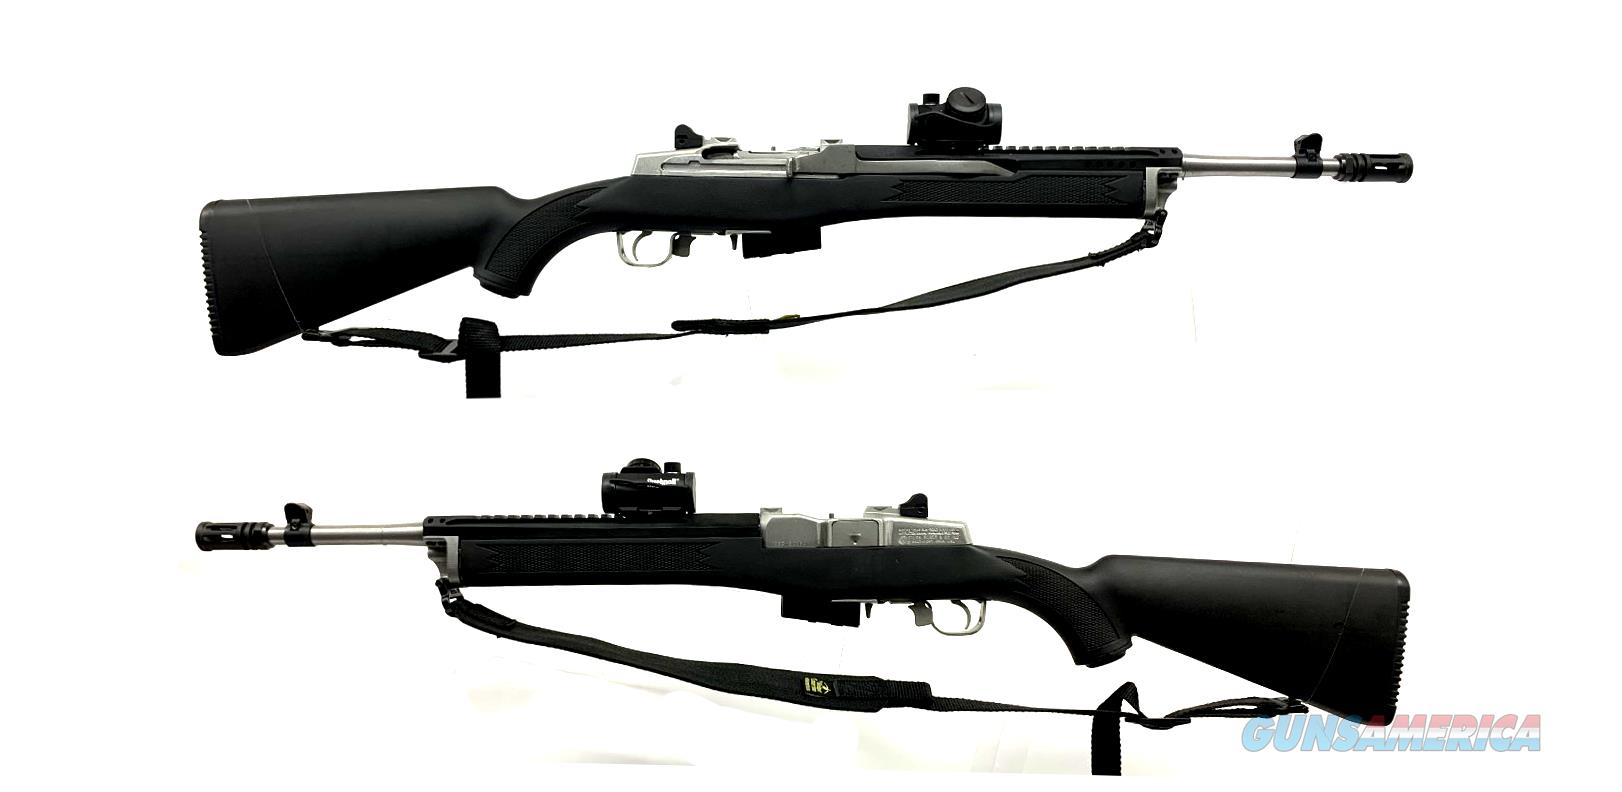 Ruger Mini-14 Semi-Automatic Ranch Rifle  Guns > Rifles > Ruger Rifles > Mini-14 Type